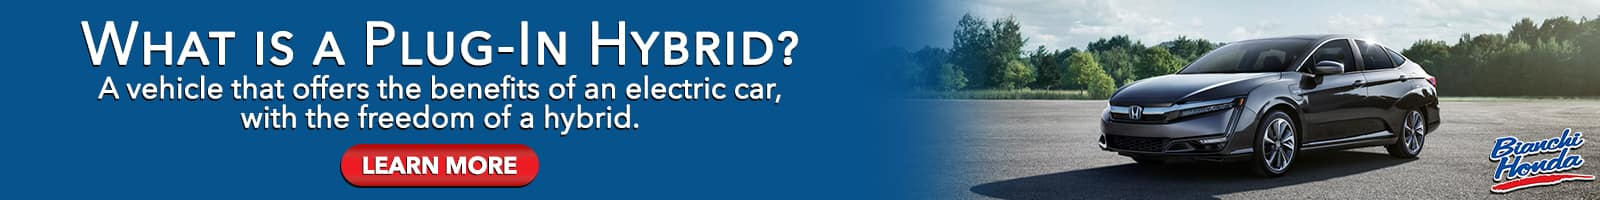 what is a plug-in hybrid?